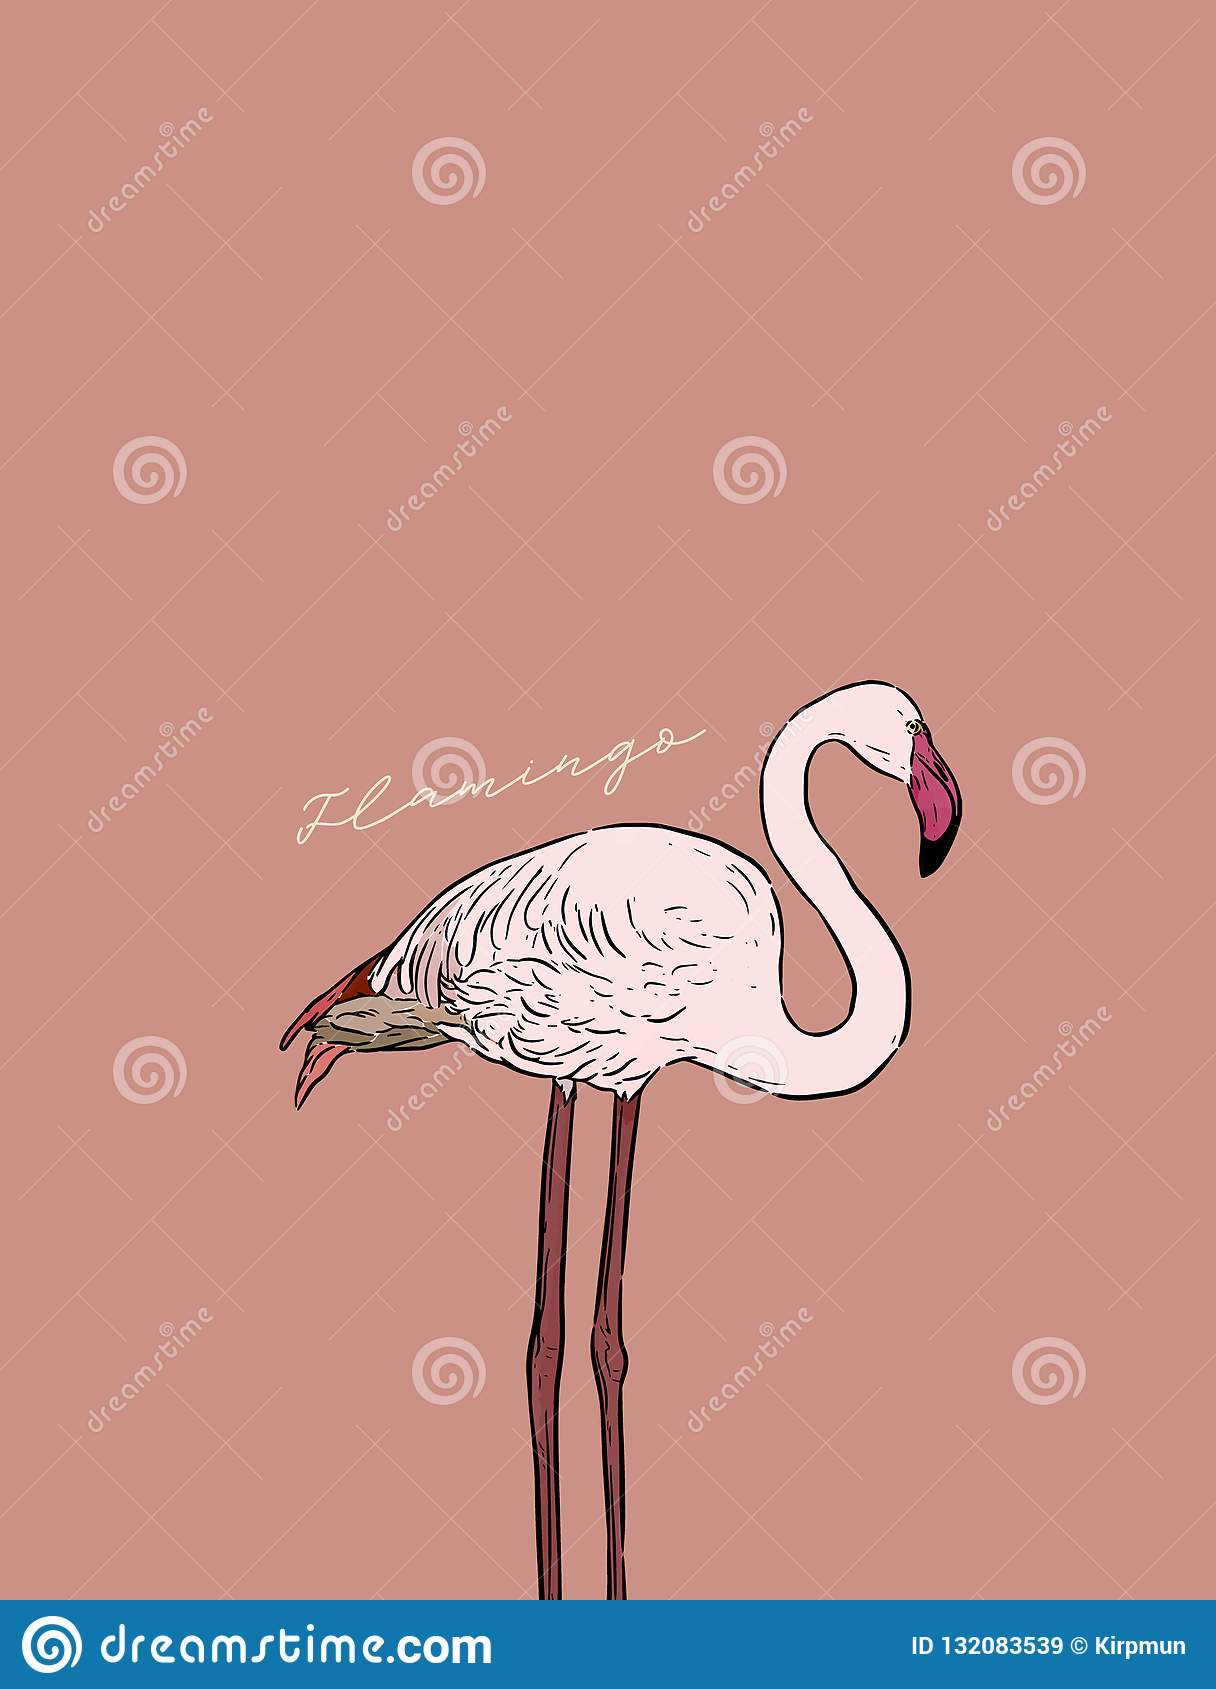 Flamingo Bird Hand Draw Vector Stock Vector Illustration Of